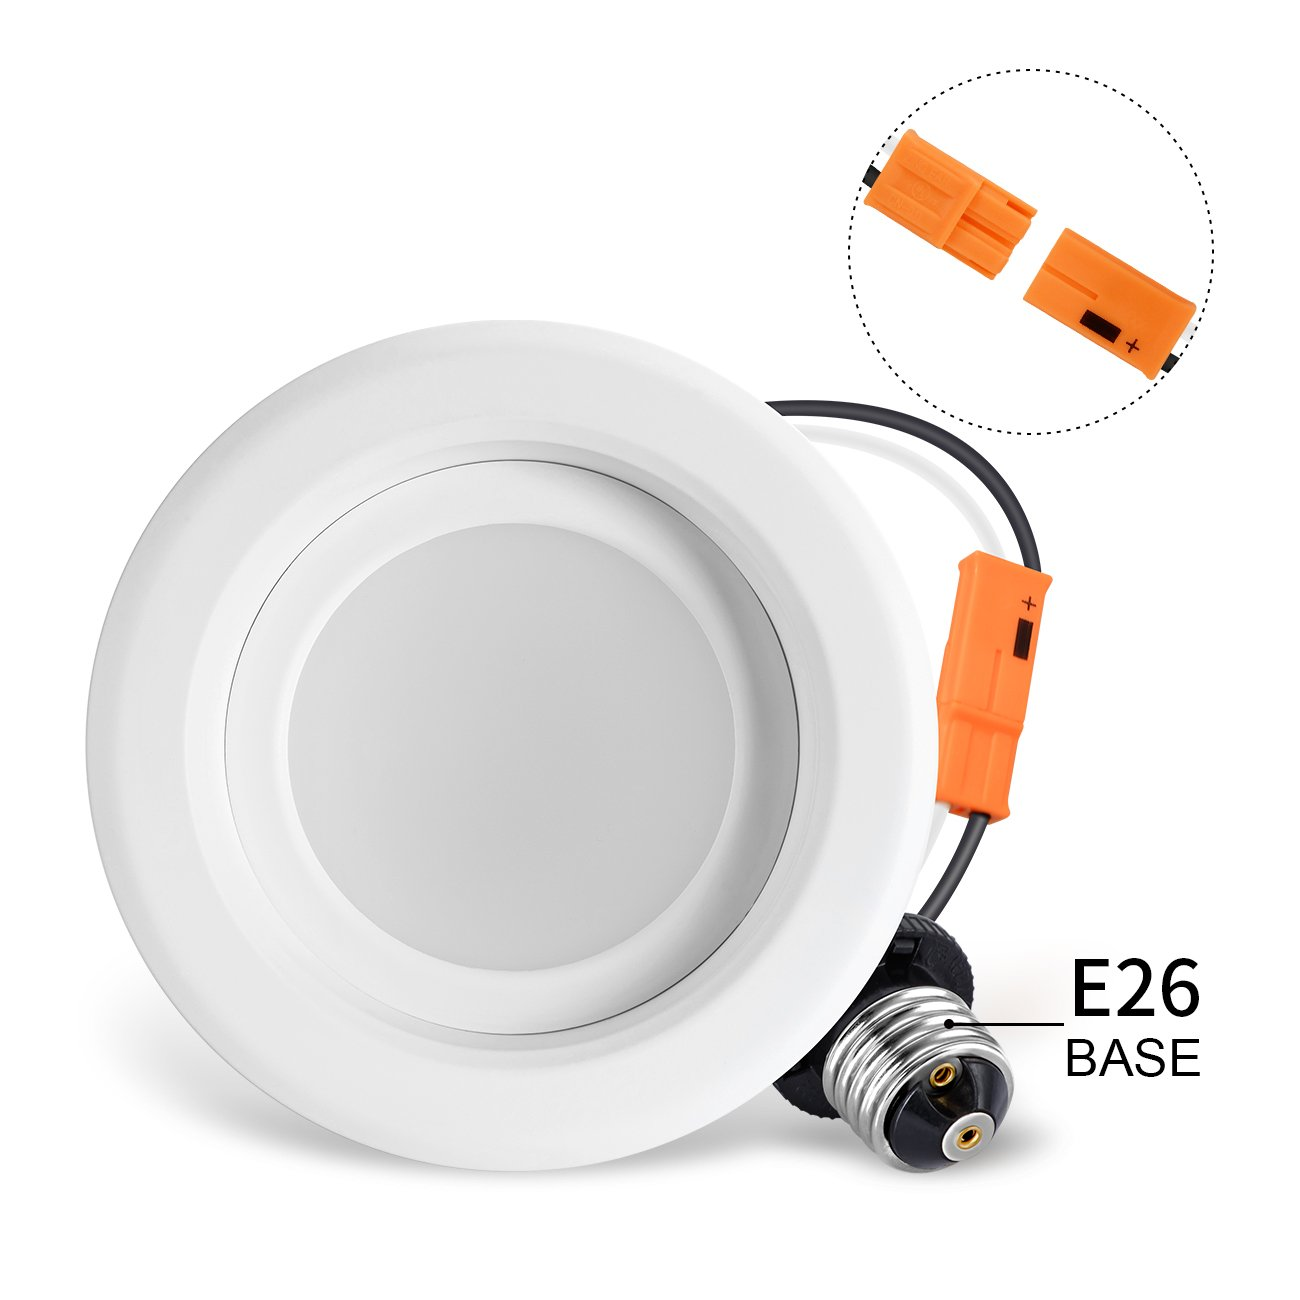 LVWIT LED 4'' Retrofit Dimmable Downlight 5000K Daylight 750 Lumens, Equivalent 65W, 5 Year Warranty(4 Pack) by LVWIT (Image #5)